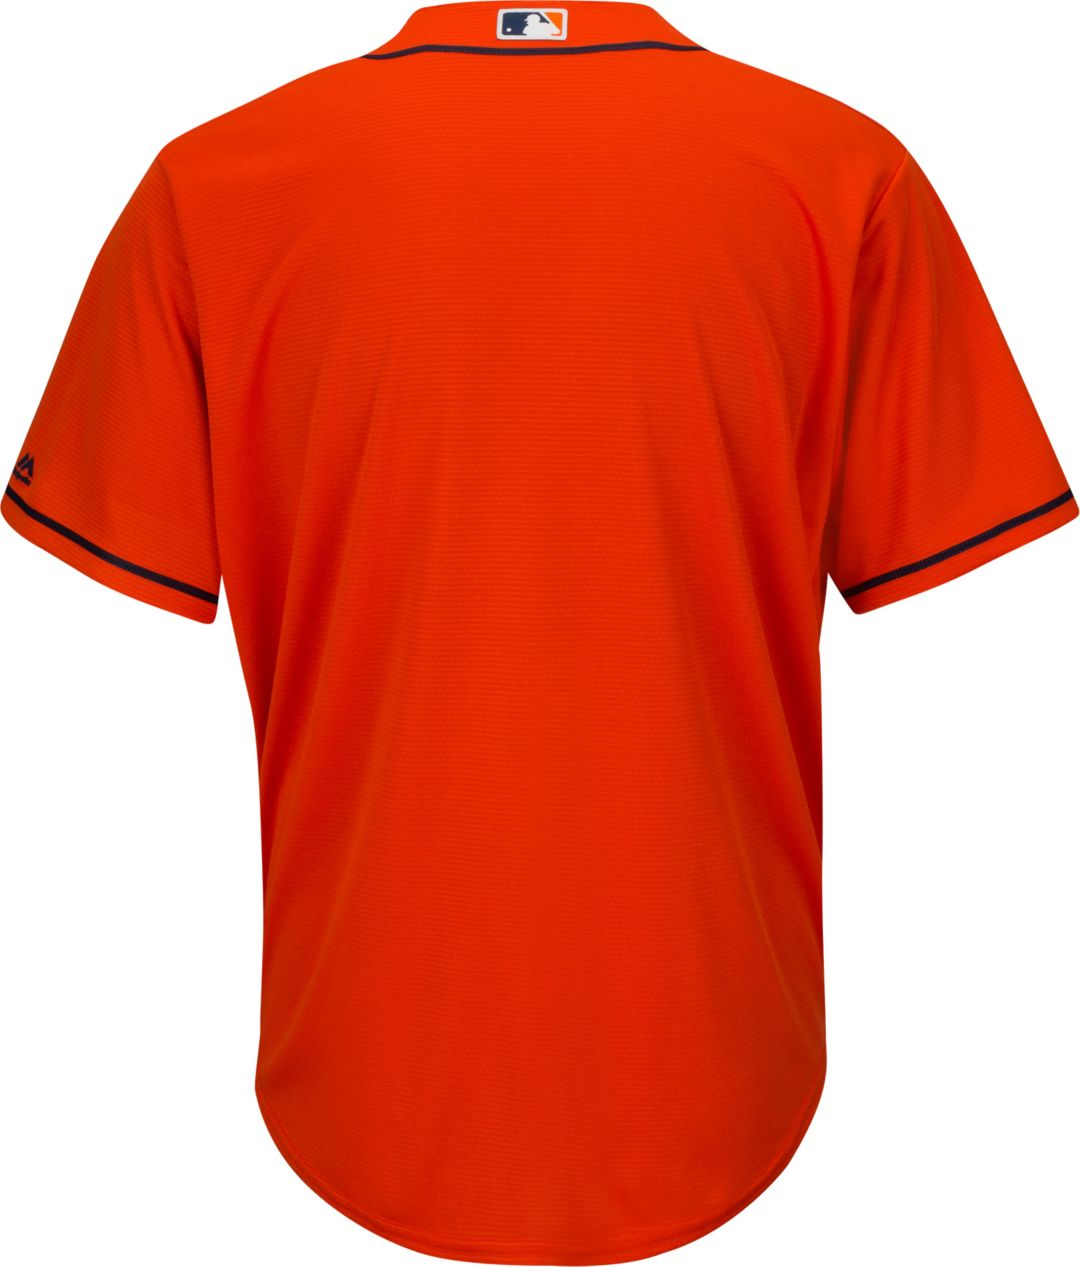 74a80cae1 Majestic Men's Replica Houston Astros Cool Base Alternate Orange Jersey.  noImageFound. Previous. 1. 2. 3